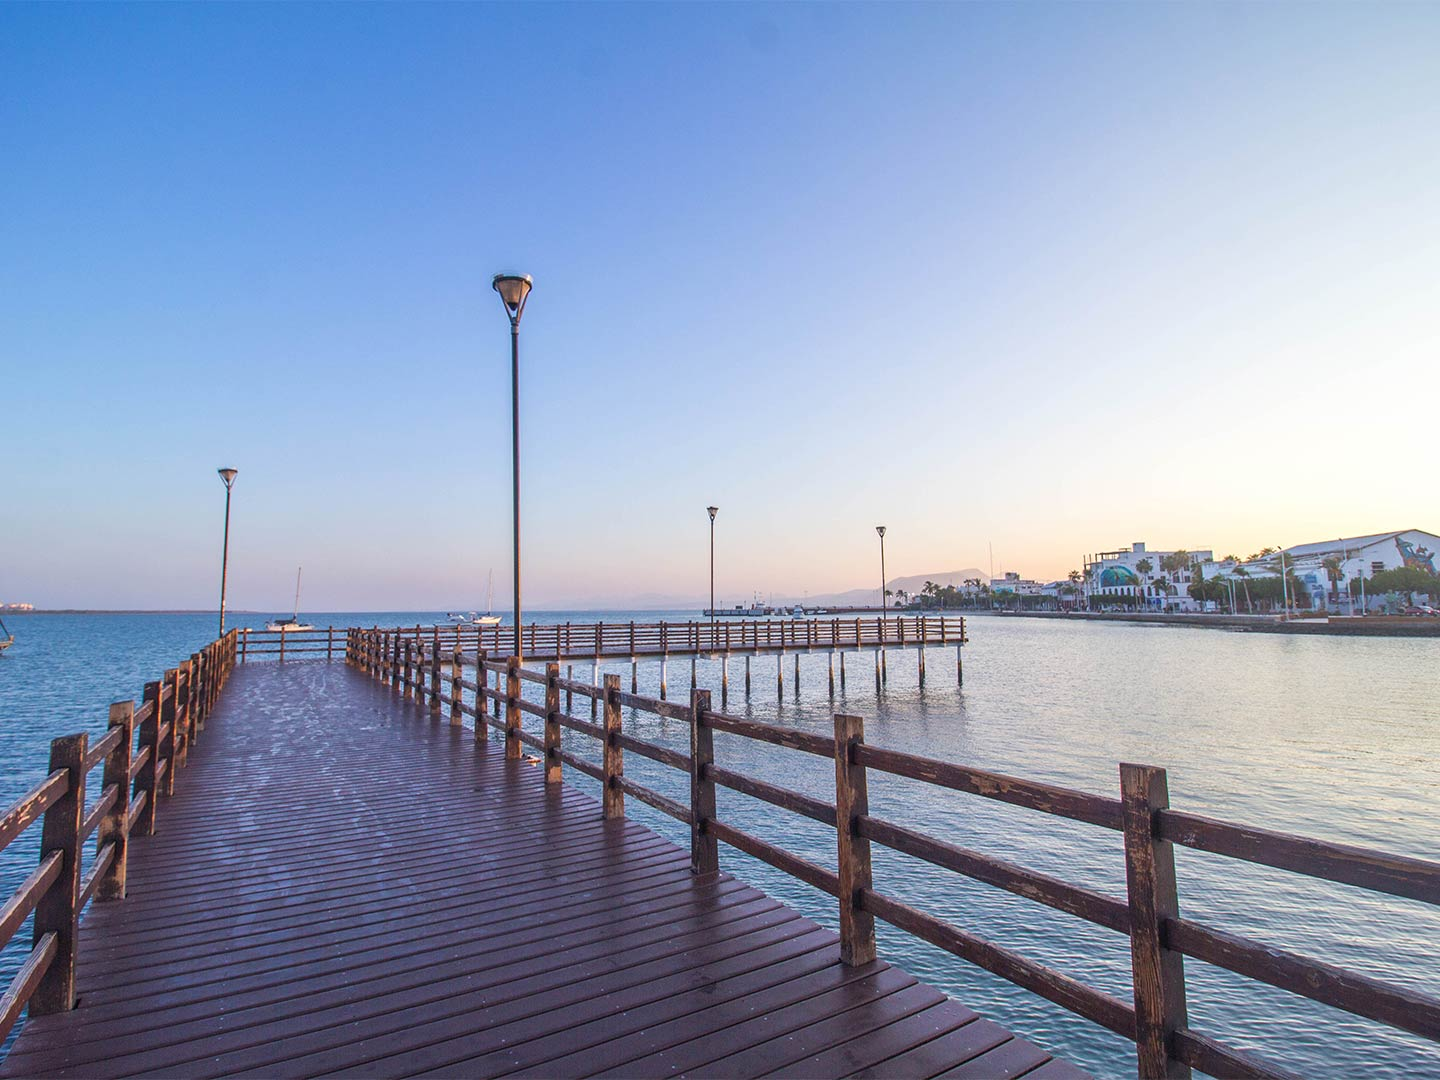 A view from La Paz pier at dusk